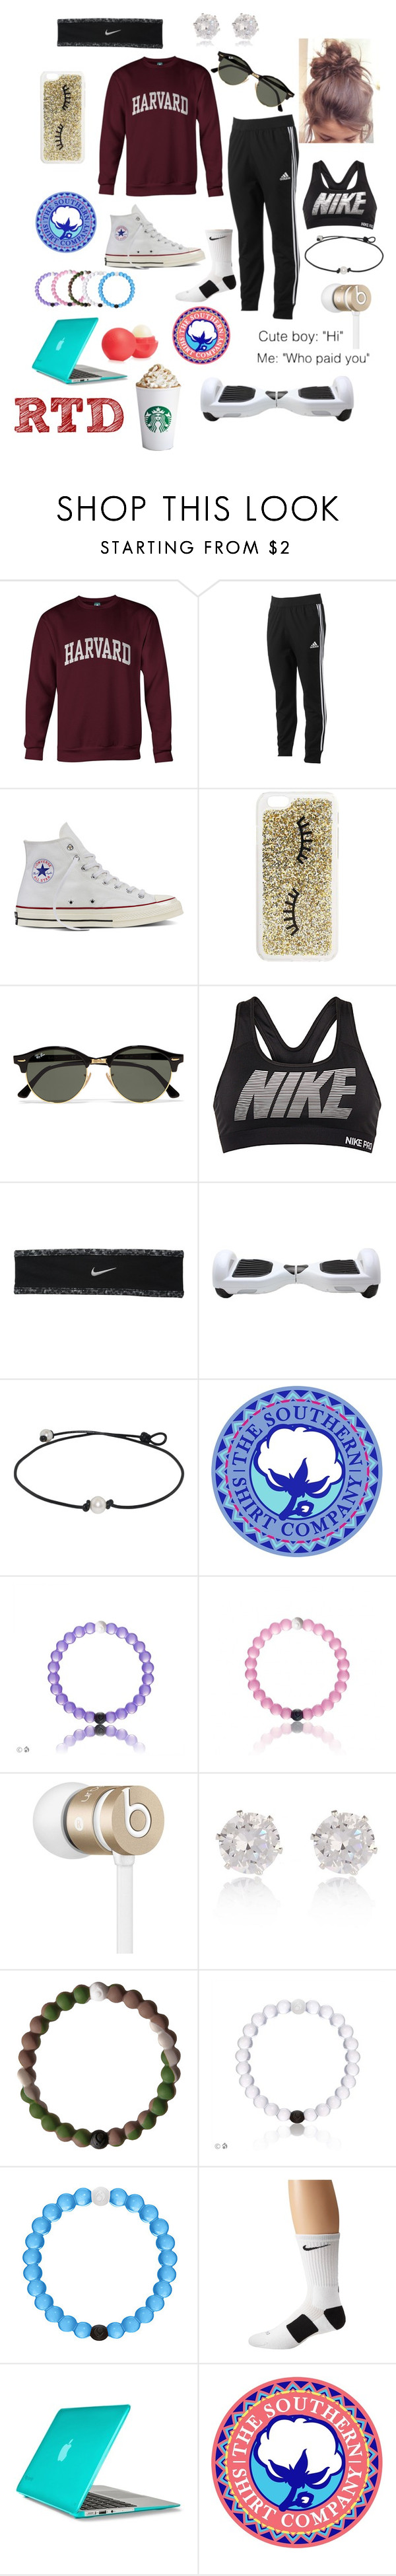 """Untitled #103"" by taybug2147 ❤ liked on Polyvore featuring adidas, Converse, Miss Selfridge, Ray-Ban, NIKE, Beats by Dr. Dre, River Island, Speck and Eos"